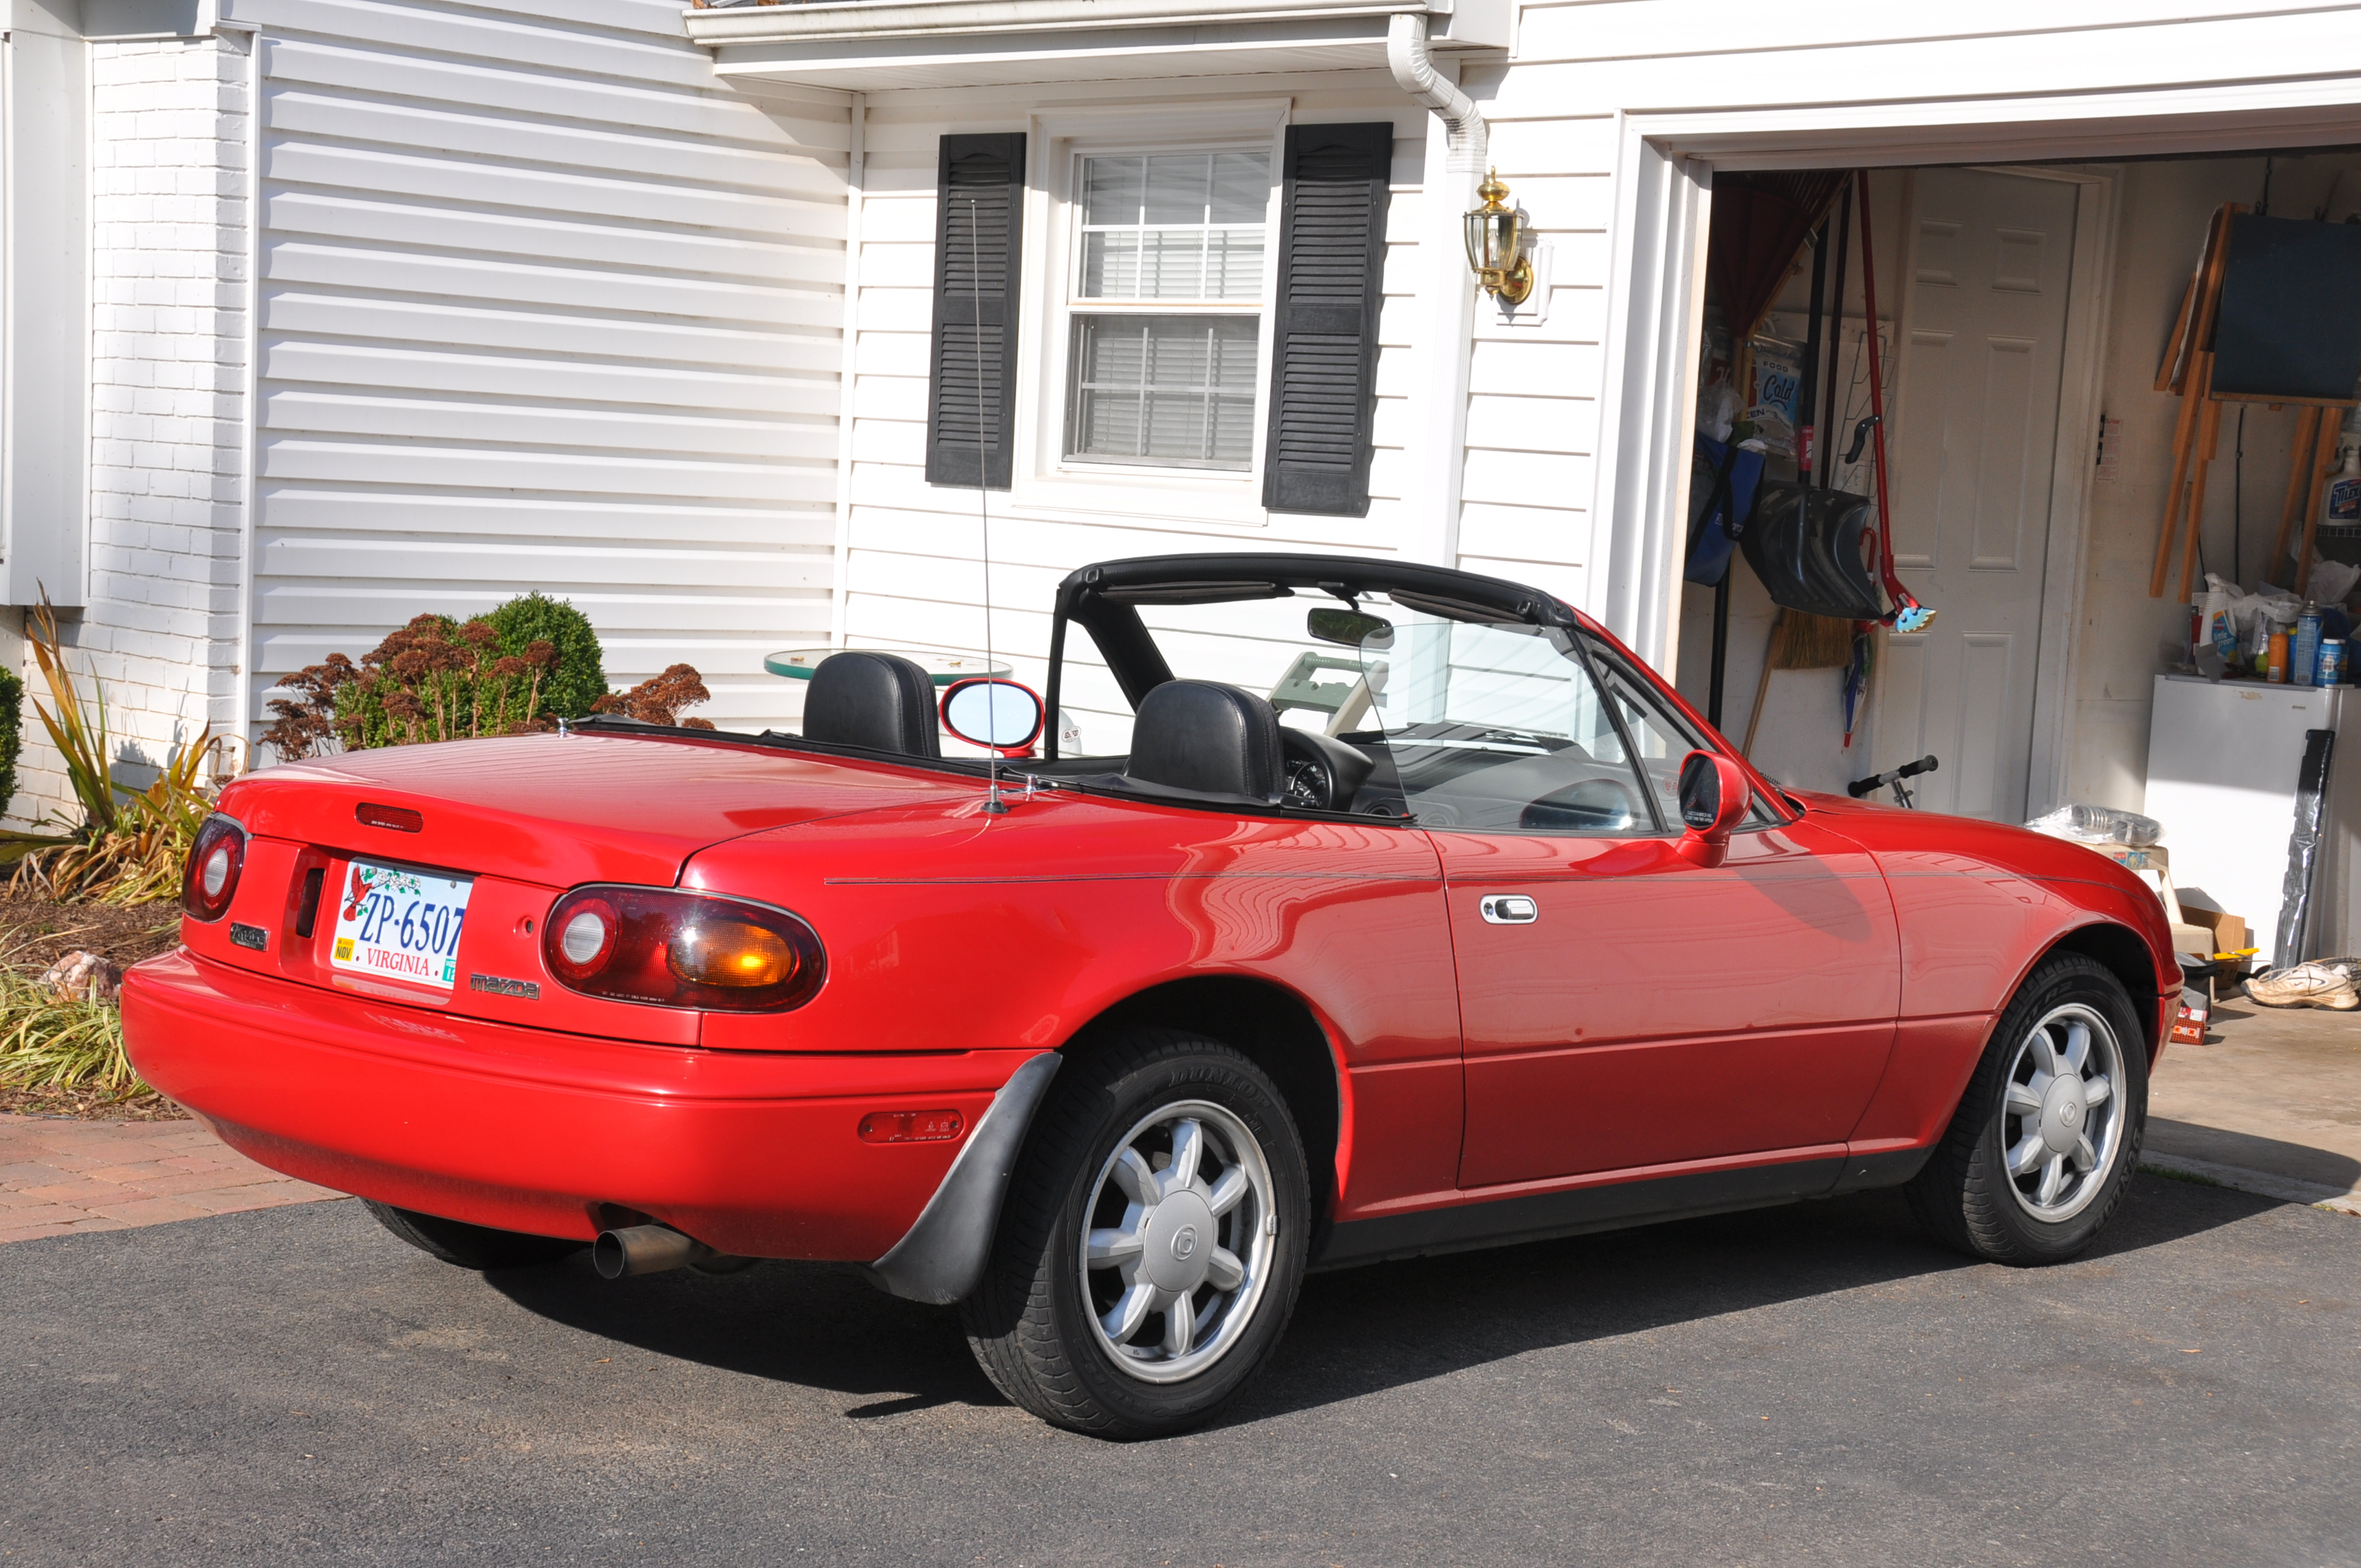 1994 mazda mx 5 miata information and photos zombiedrive. Black Bedroom Furniture Sets. Home Design Ideas